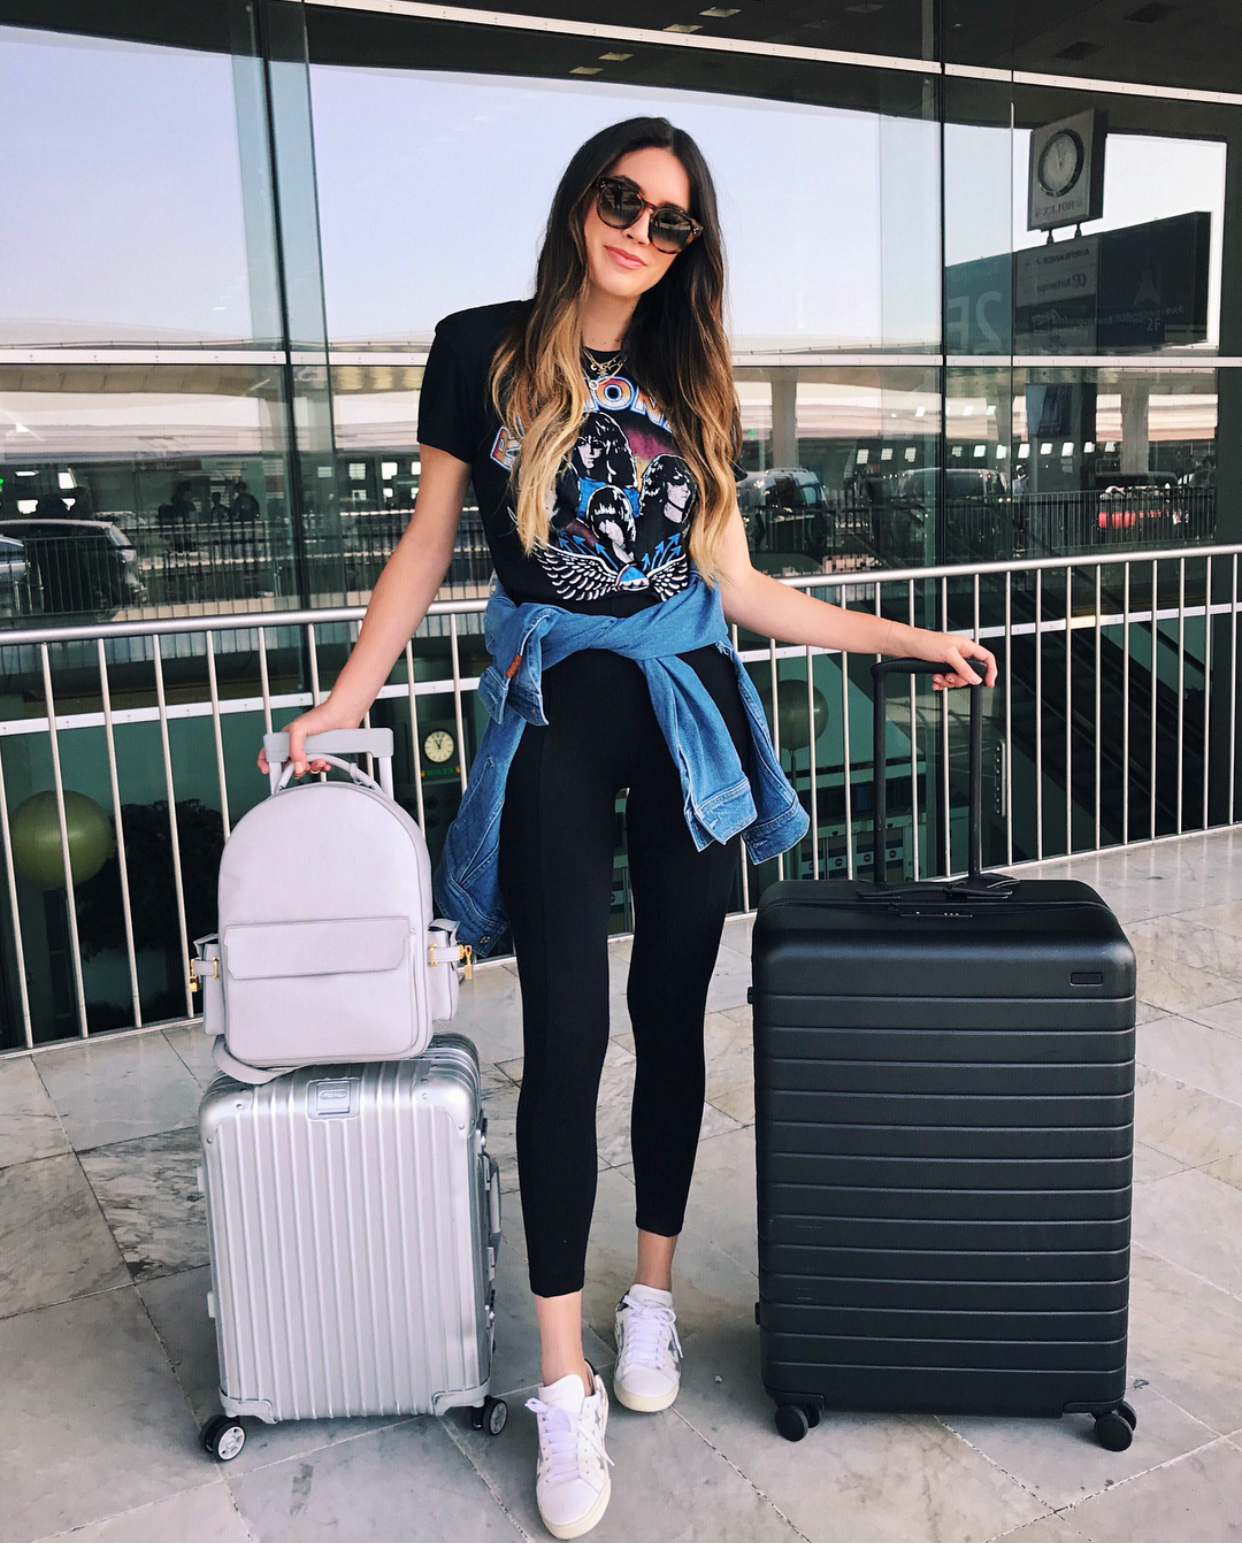 448b6321d4b Summer is finally in full effect! I wanted to share my summer travel  checklist